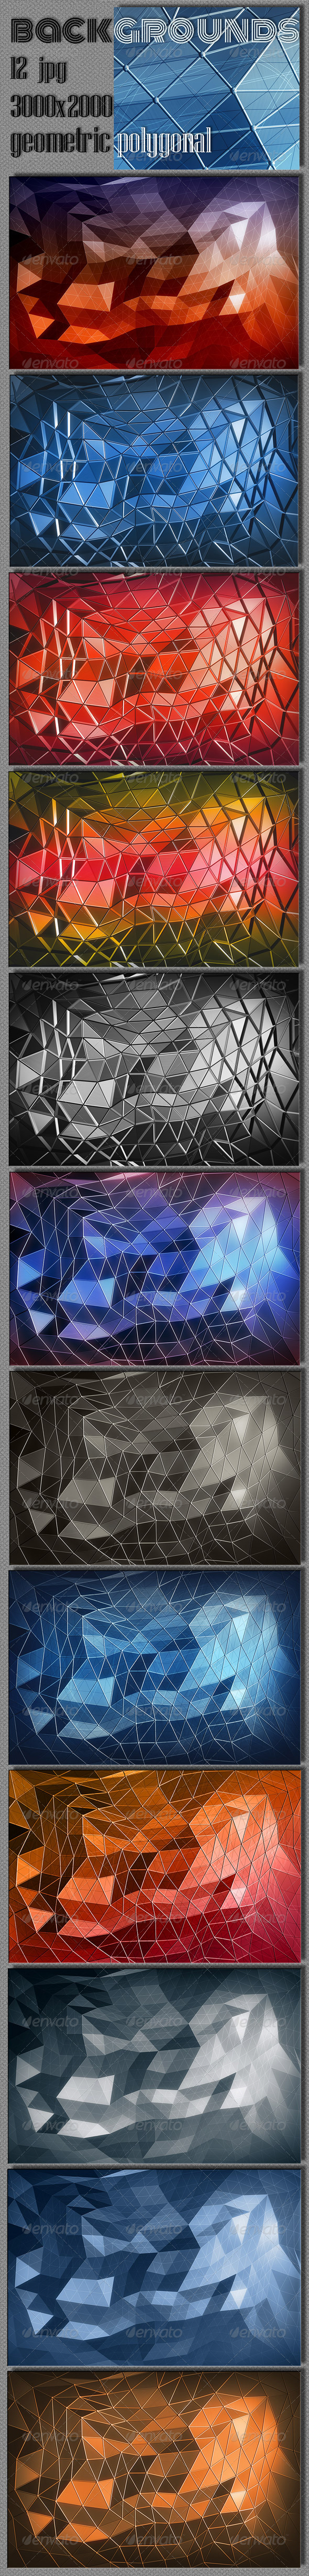 Polygonal Geometric Backgrounds - Abstract Backgrounds